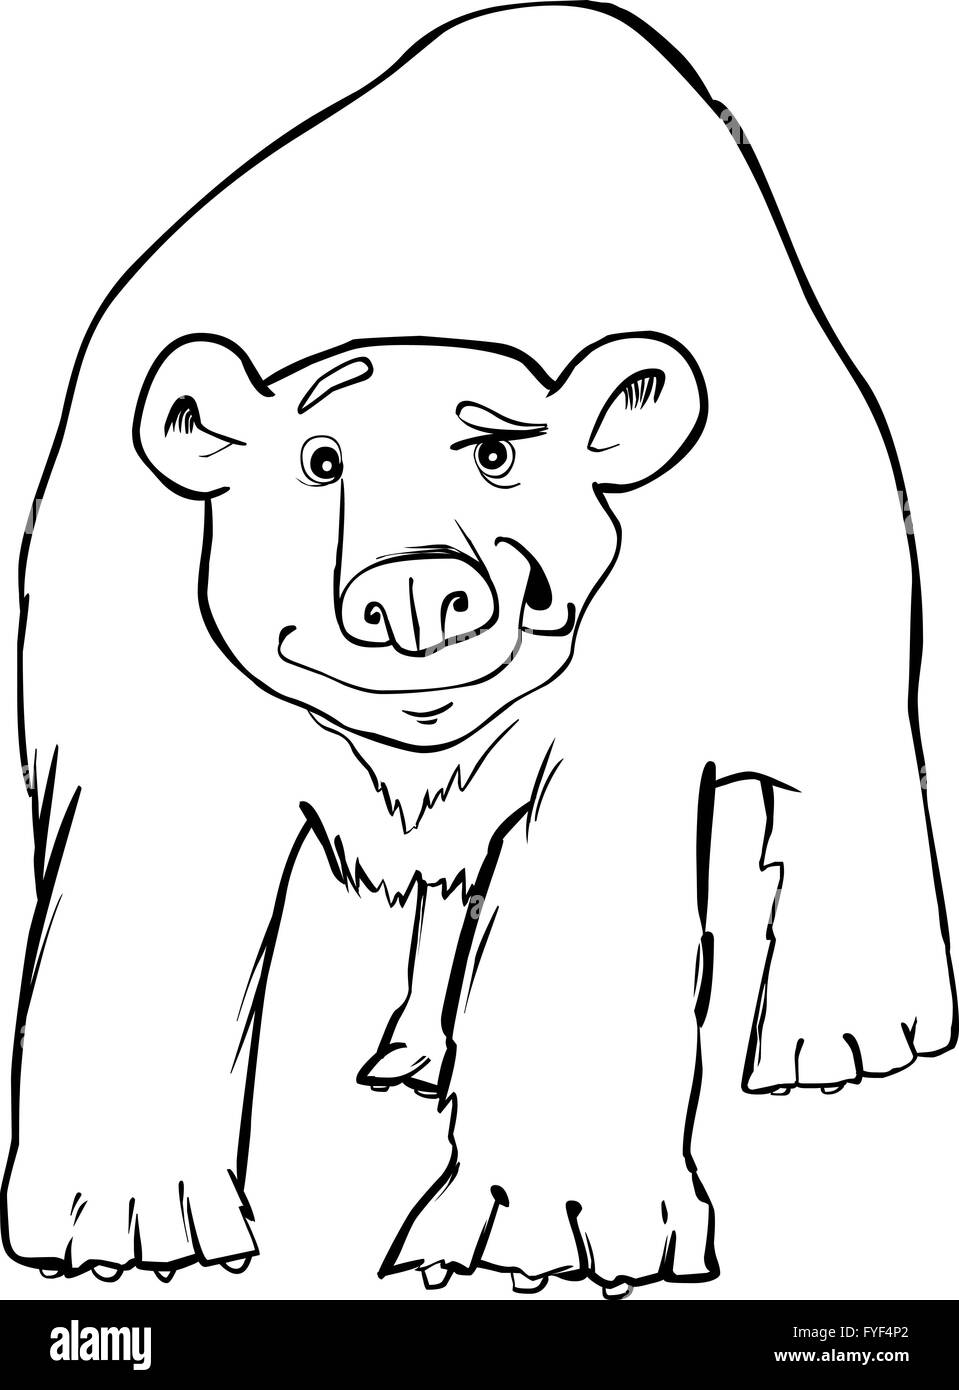 polar bear coloring page Stock Photo: 102980586 - Alamy